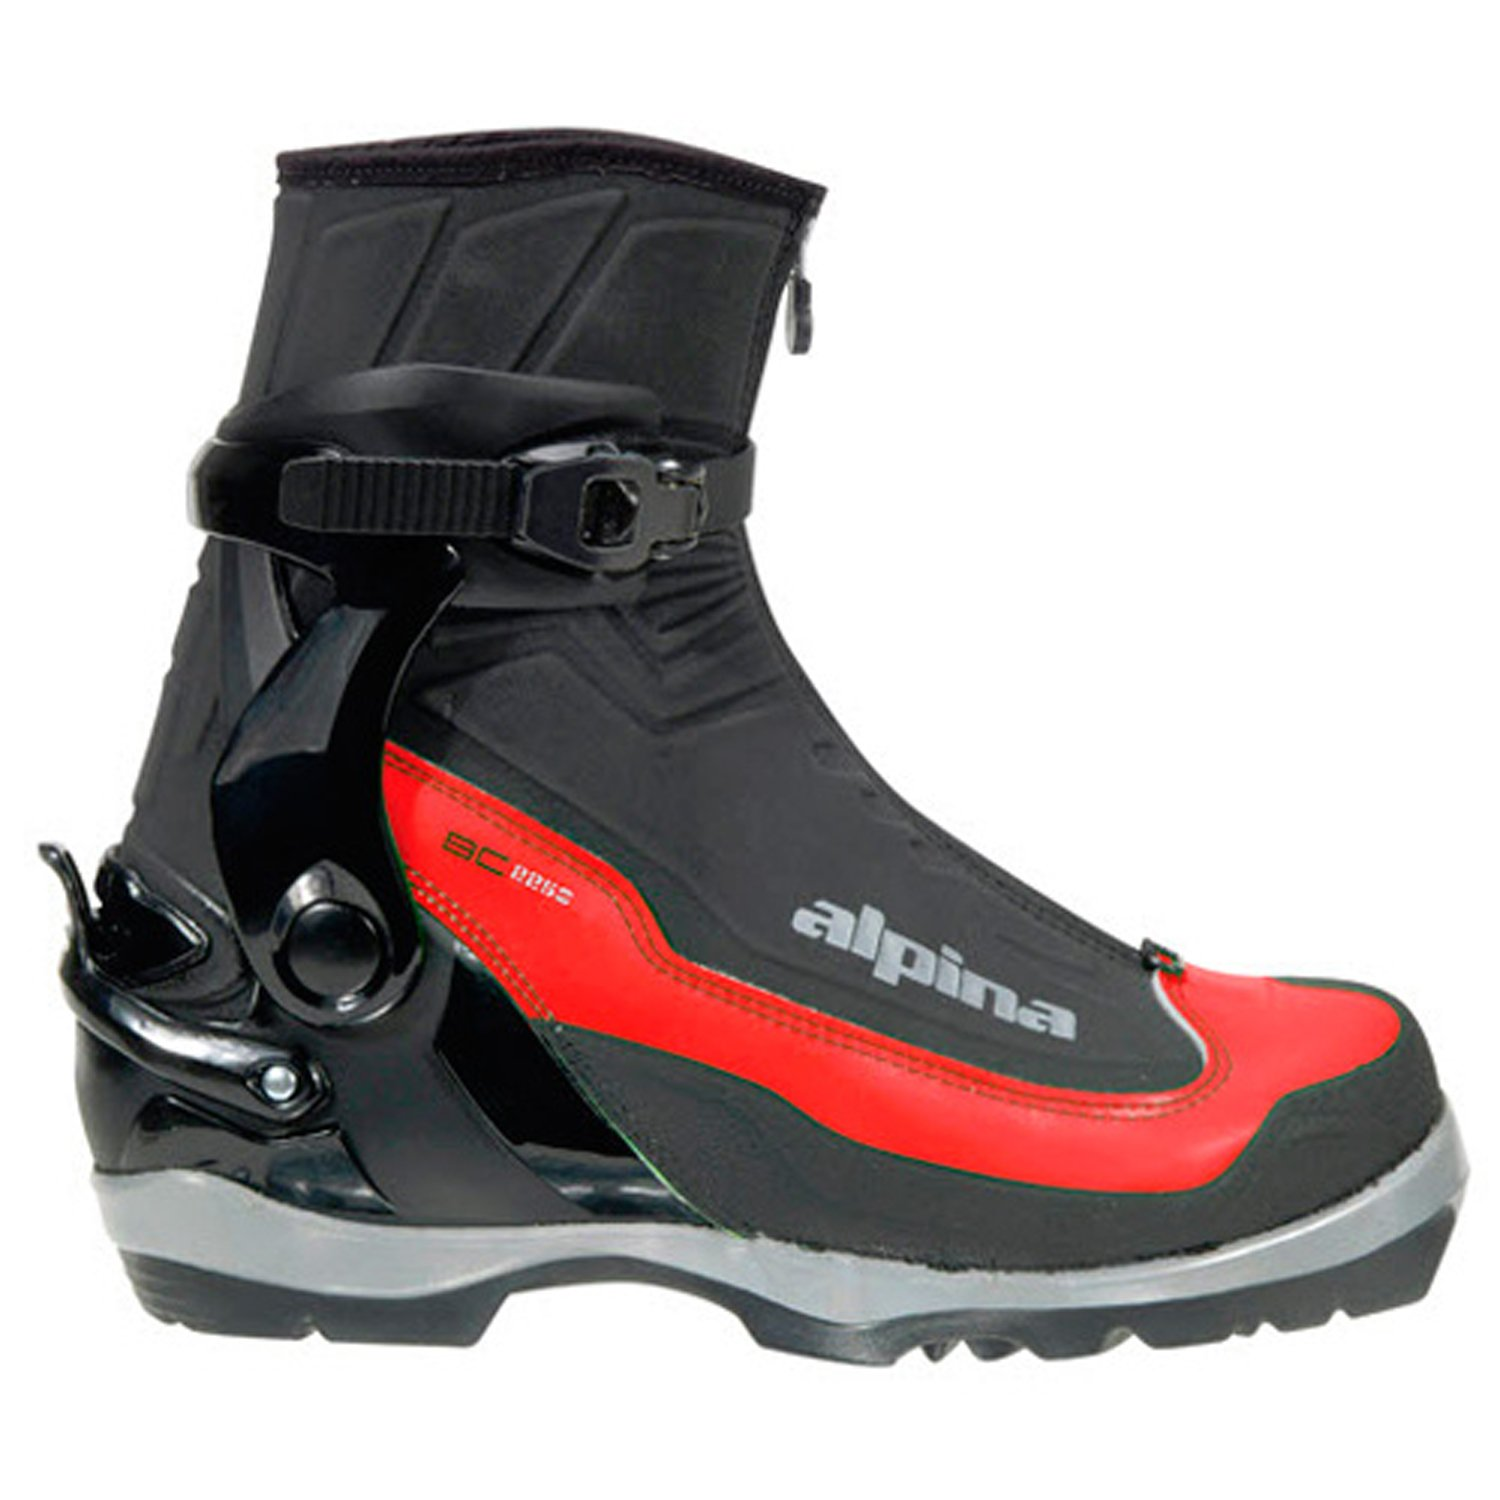 Amazoncom Alpina Sports BC BackCountry CrossCountry Nordic - Alpina boots